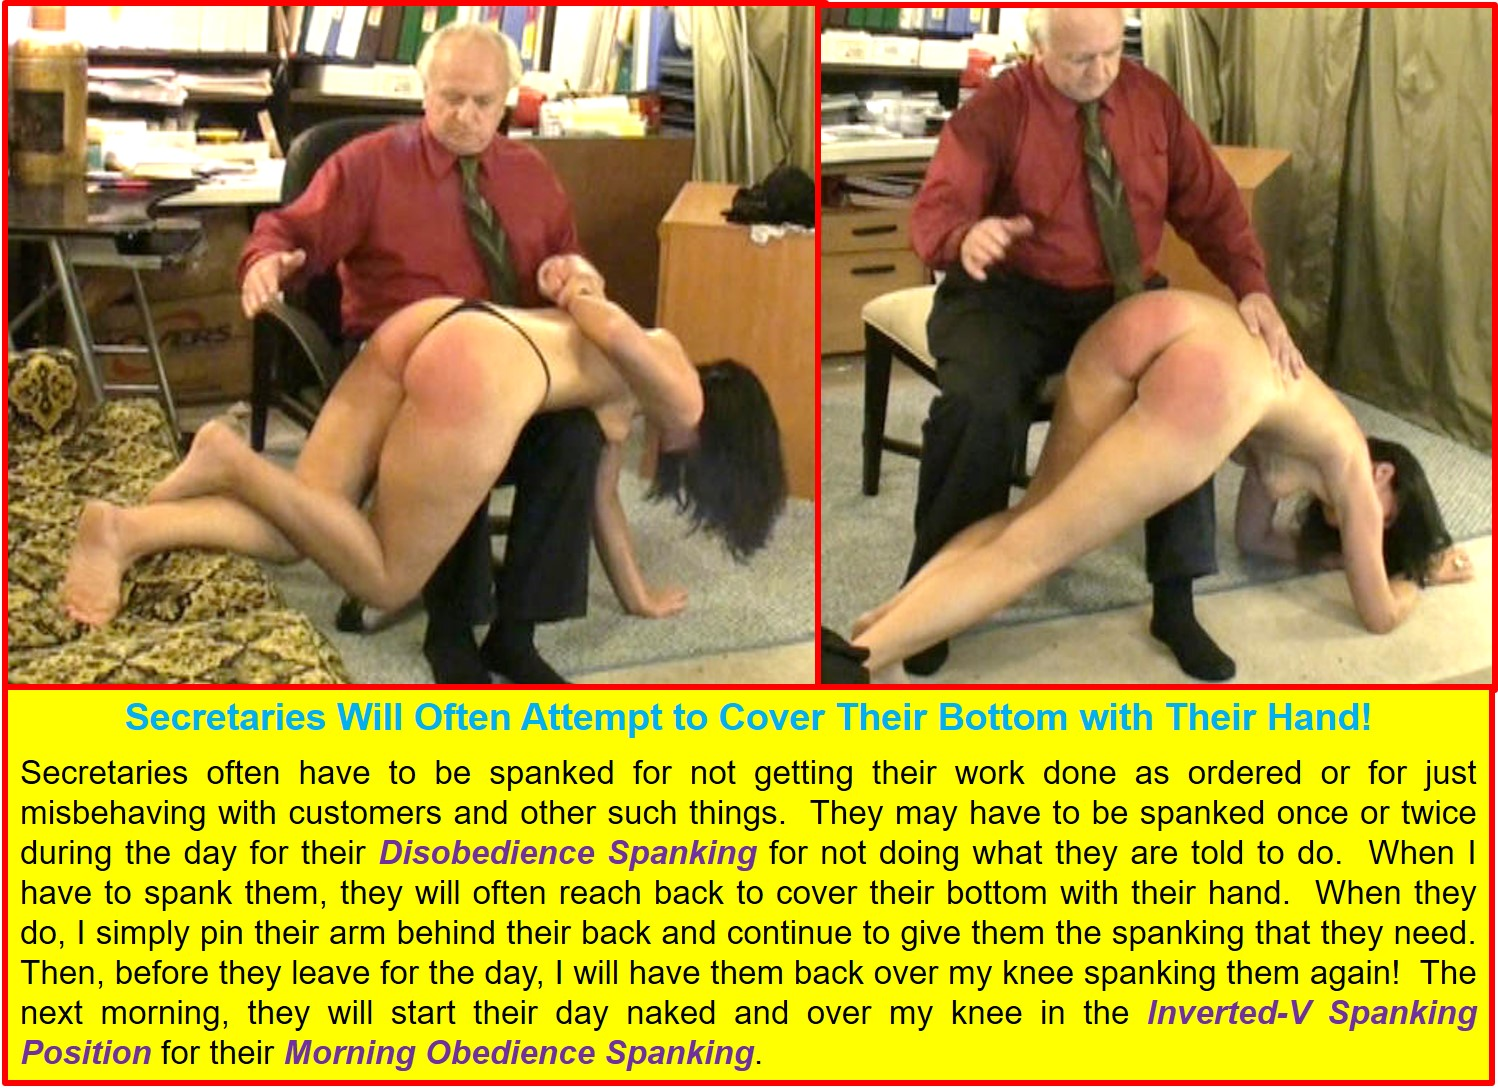 Behavior-Modification and Attitude-Adjustment Spankings, 2